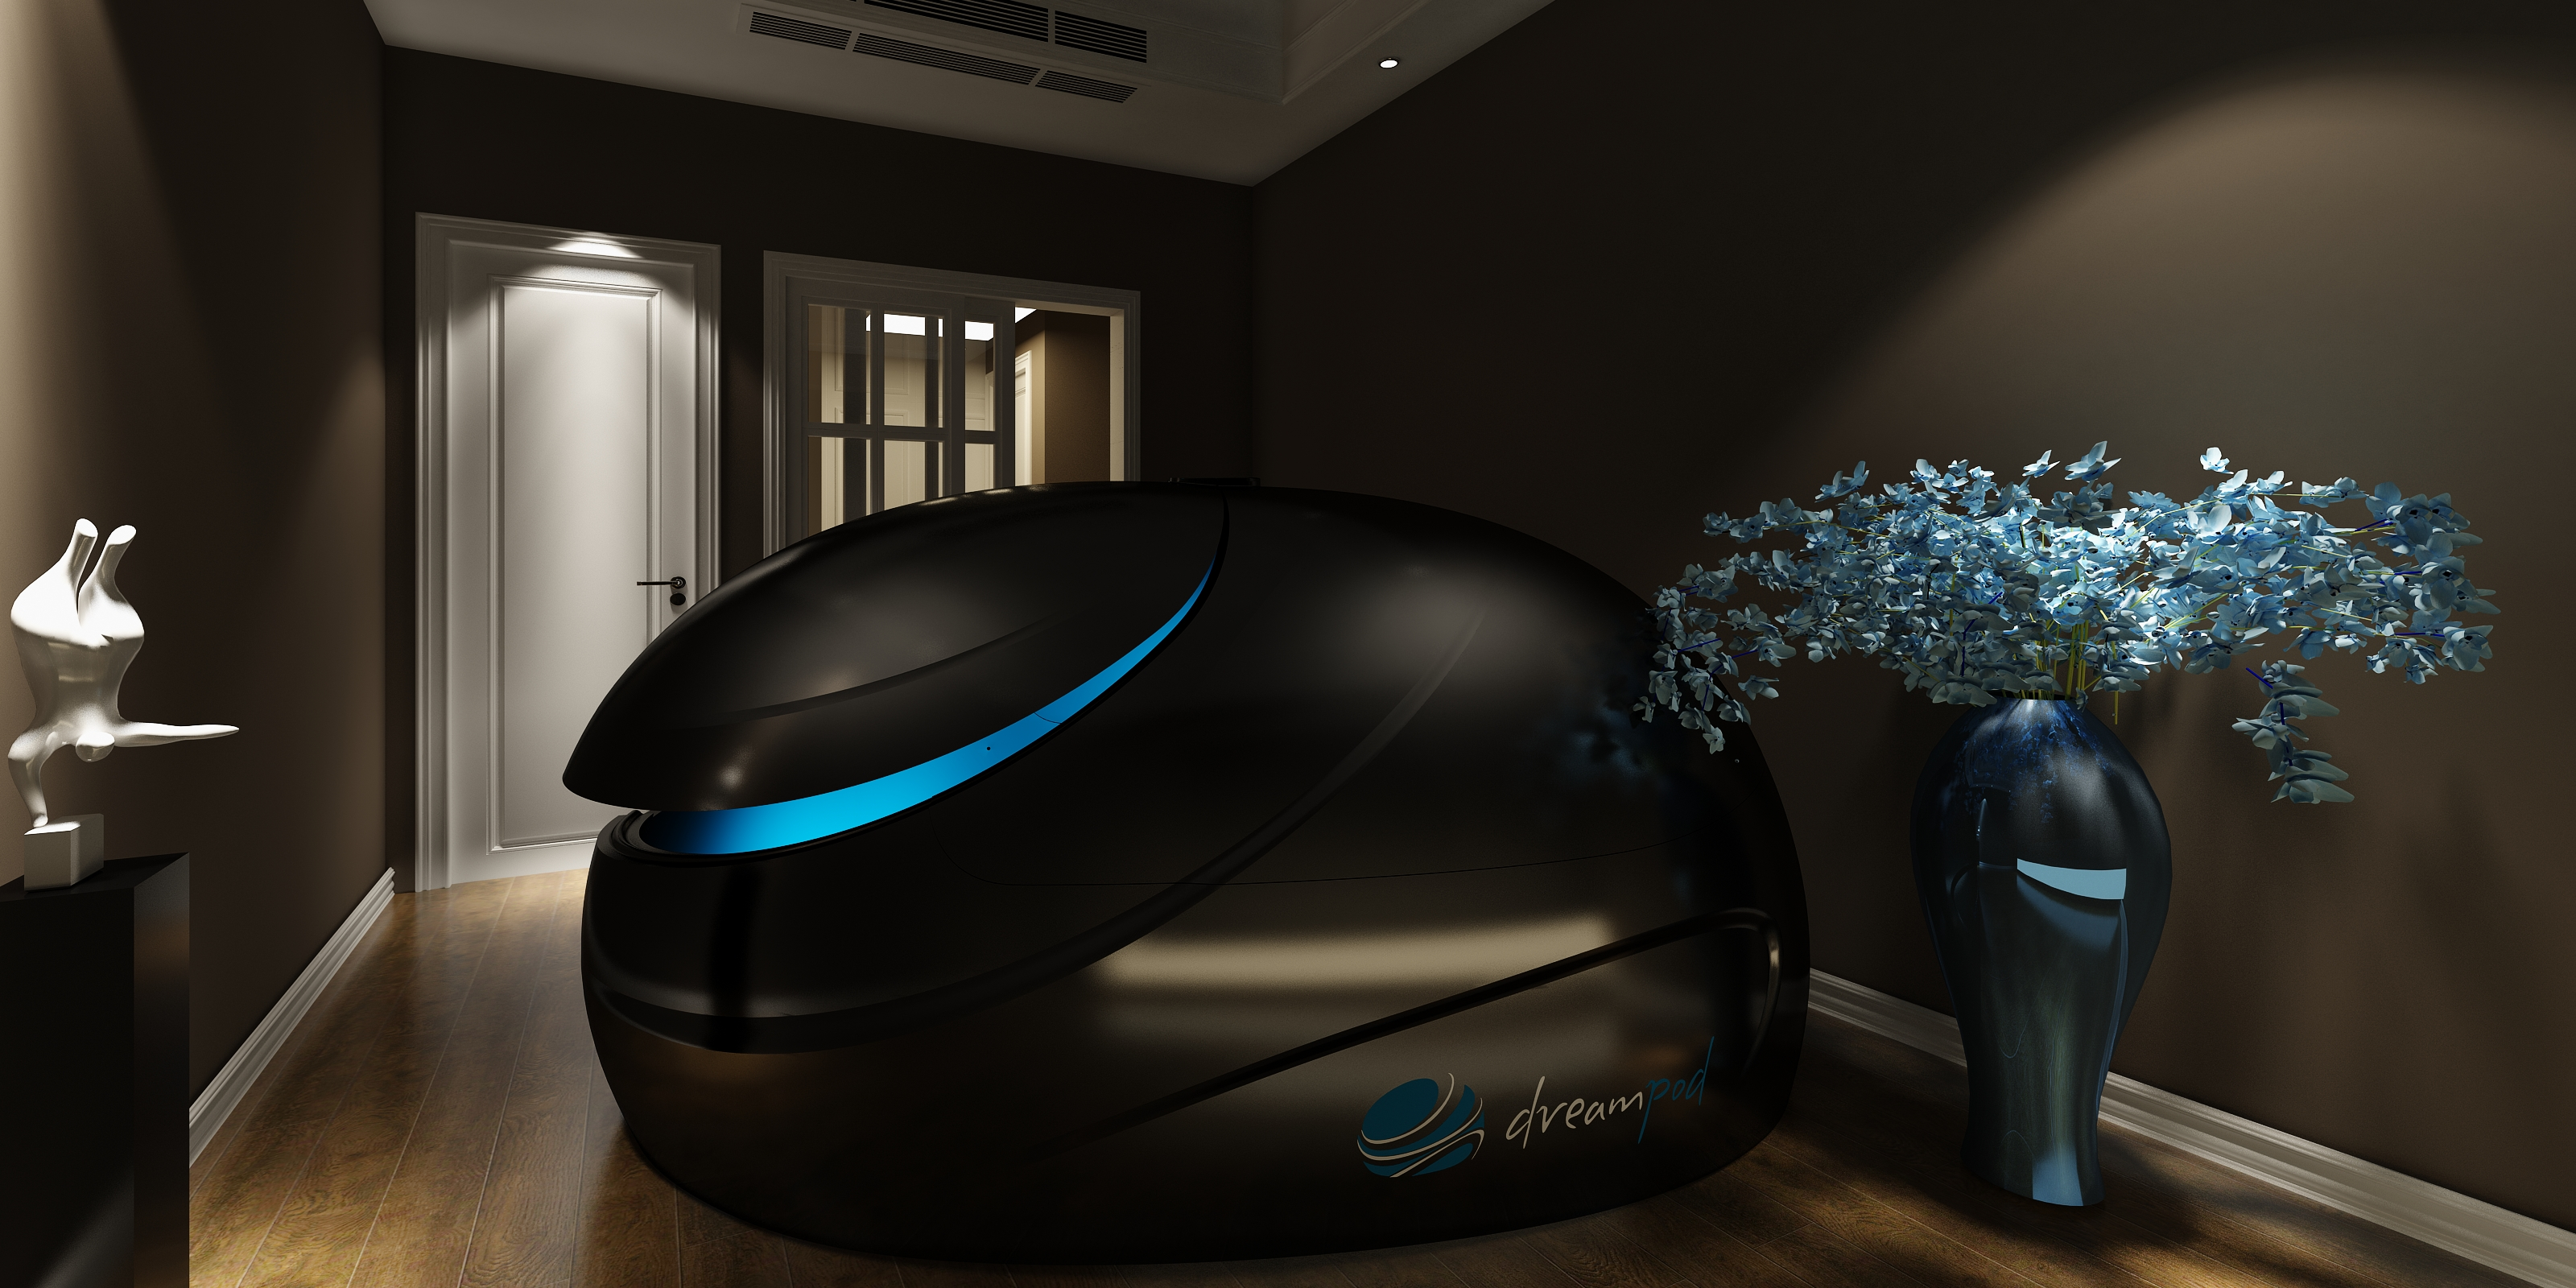 The Dreampod Stealth Amazing Floatation Tanks Dreampod